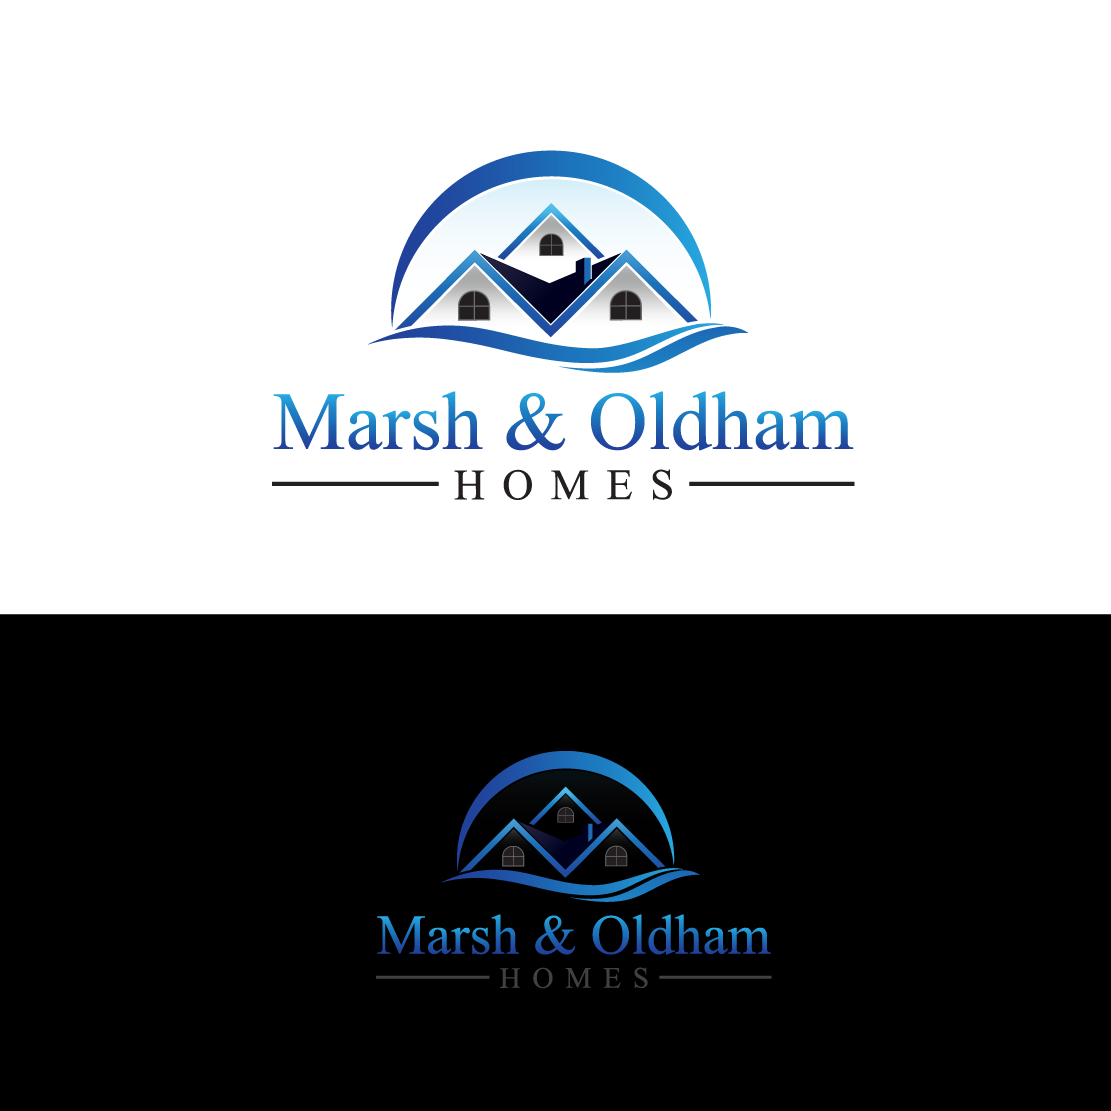 Logo Design by Private User - Entry No. 87 in the Logo Design Contest Artistic Logo Design for Marsh & Oldham Homes.